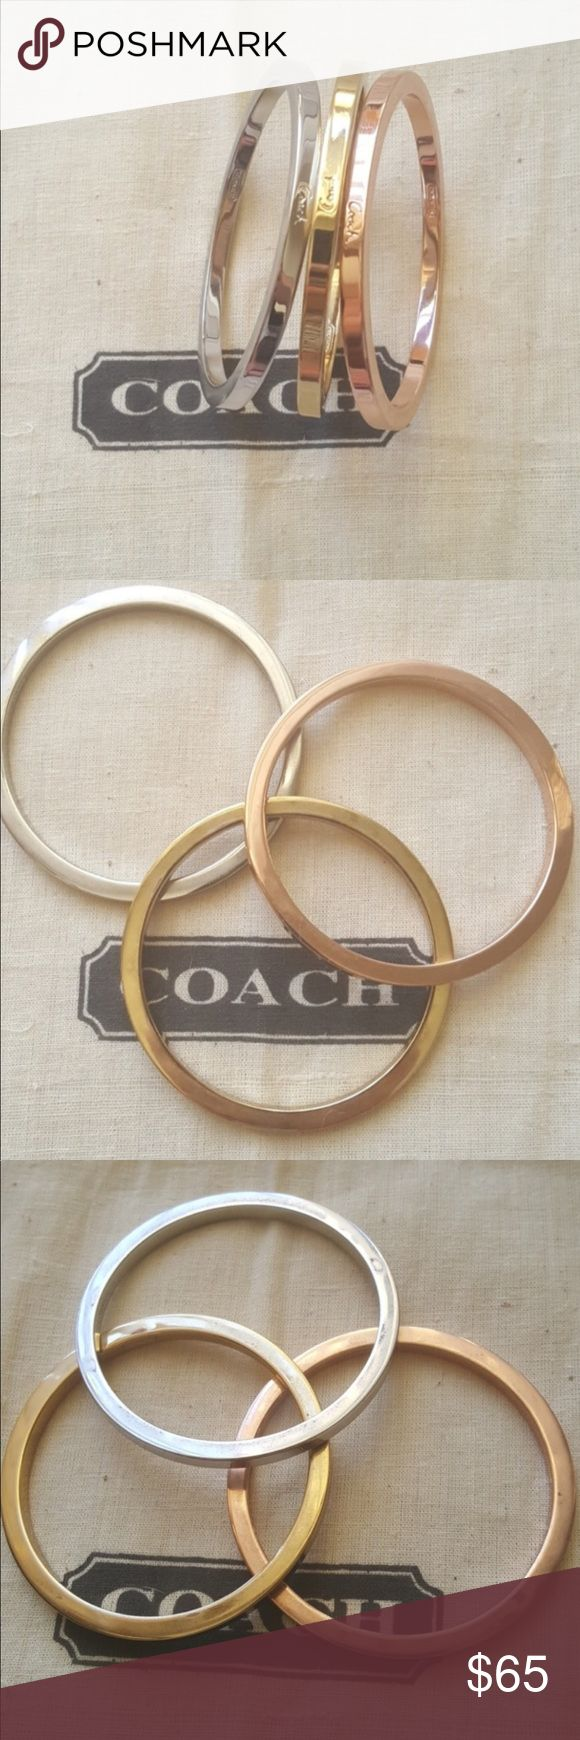 Coach mix metal bracelet bangle set Trio of gold, rose gold and silver bracelet set. It has coach written in scripts. Minor scratches hardly noticeable please review all photos as they serve as part of description. Coach Jewelry Bracelets